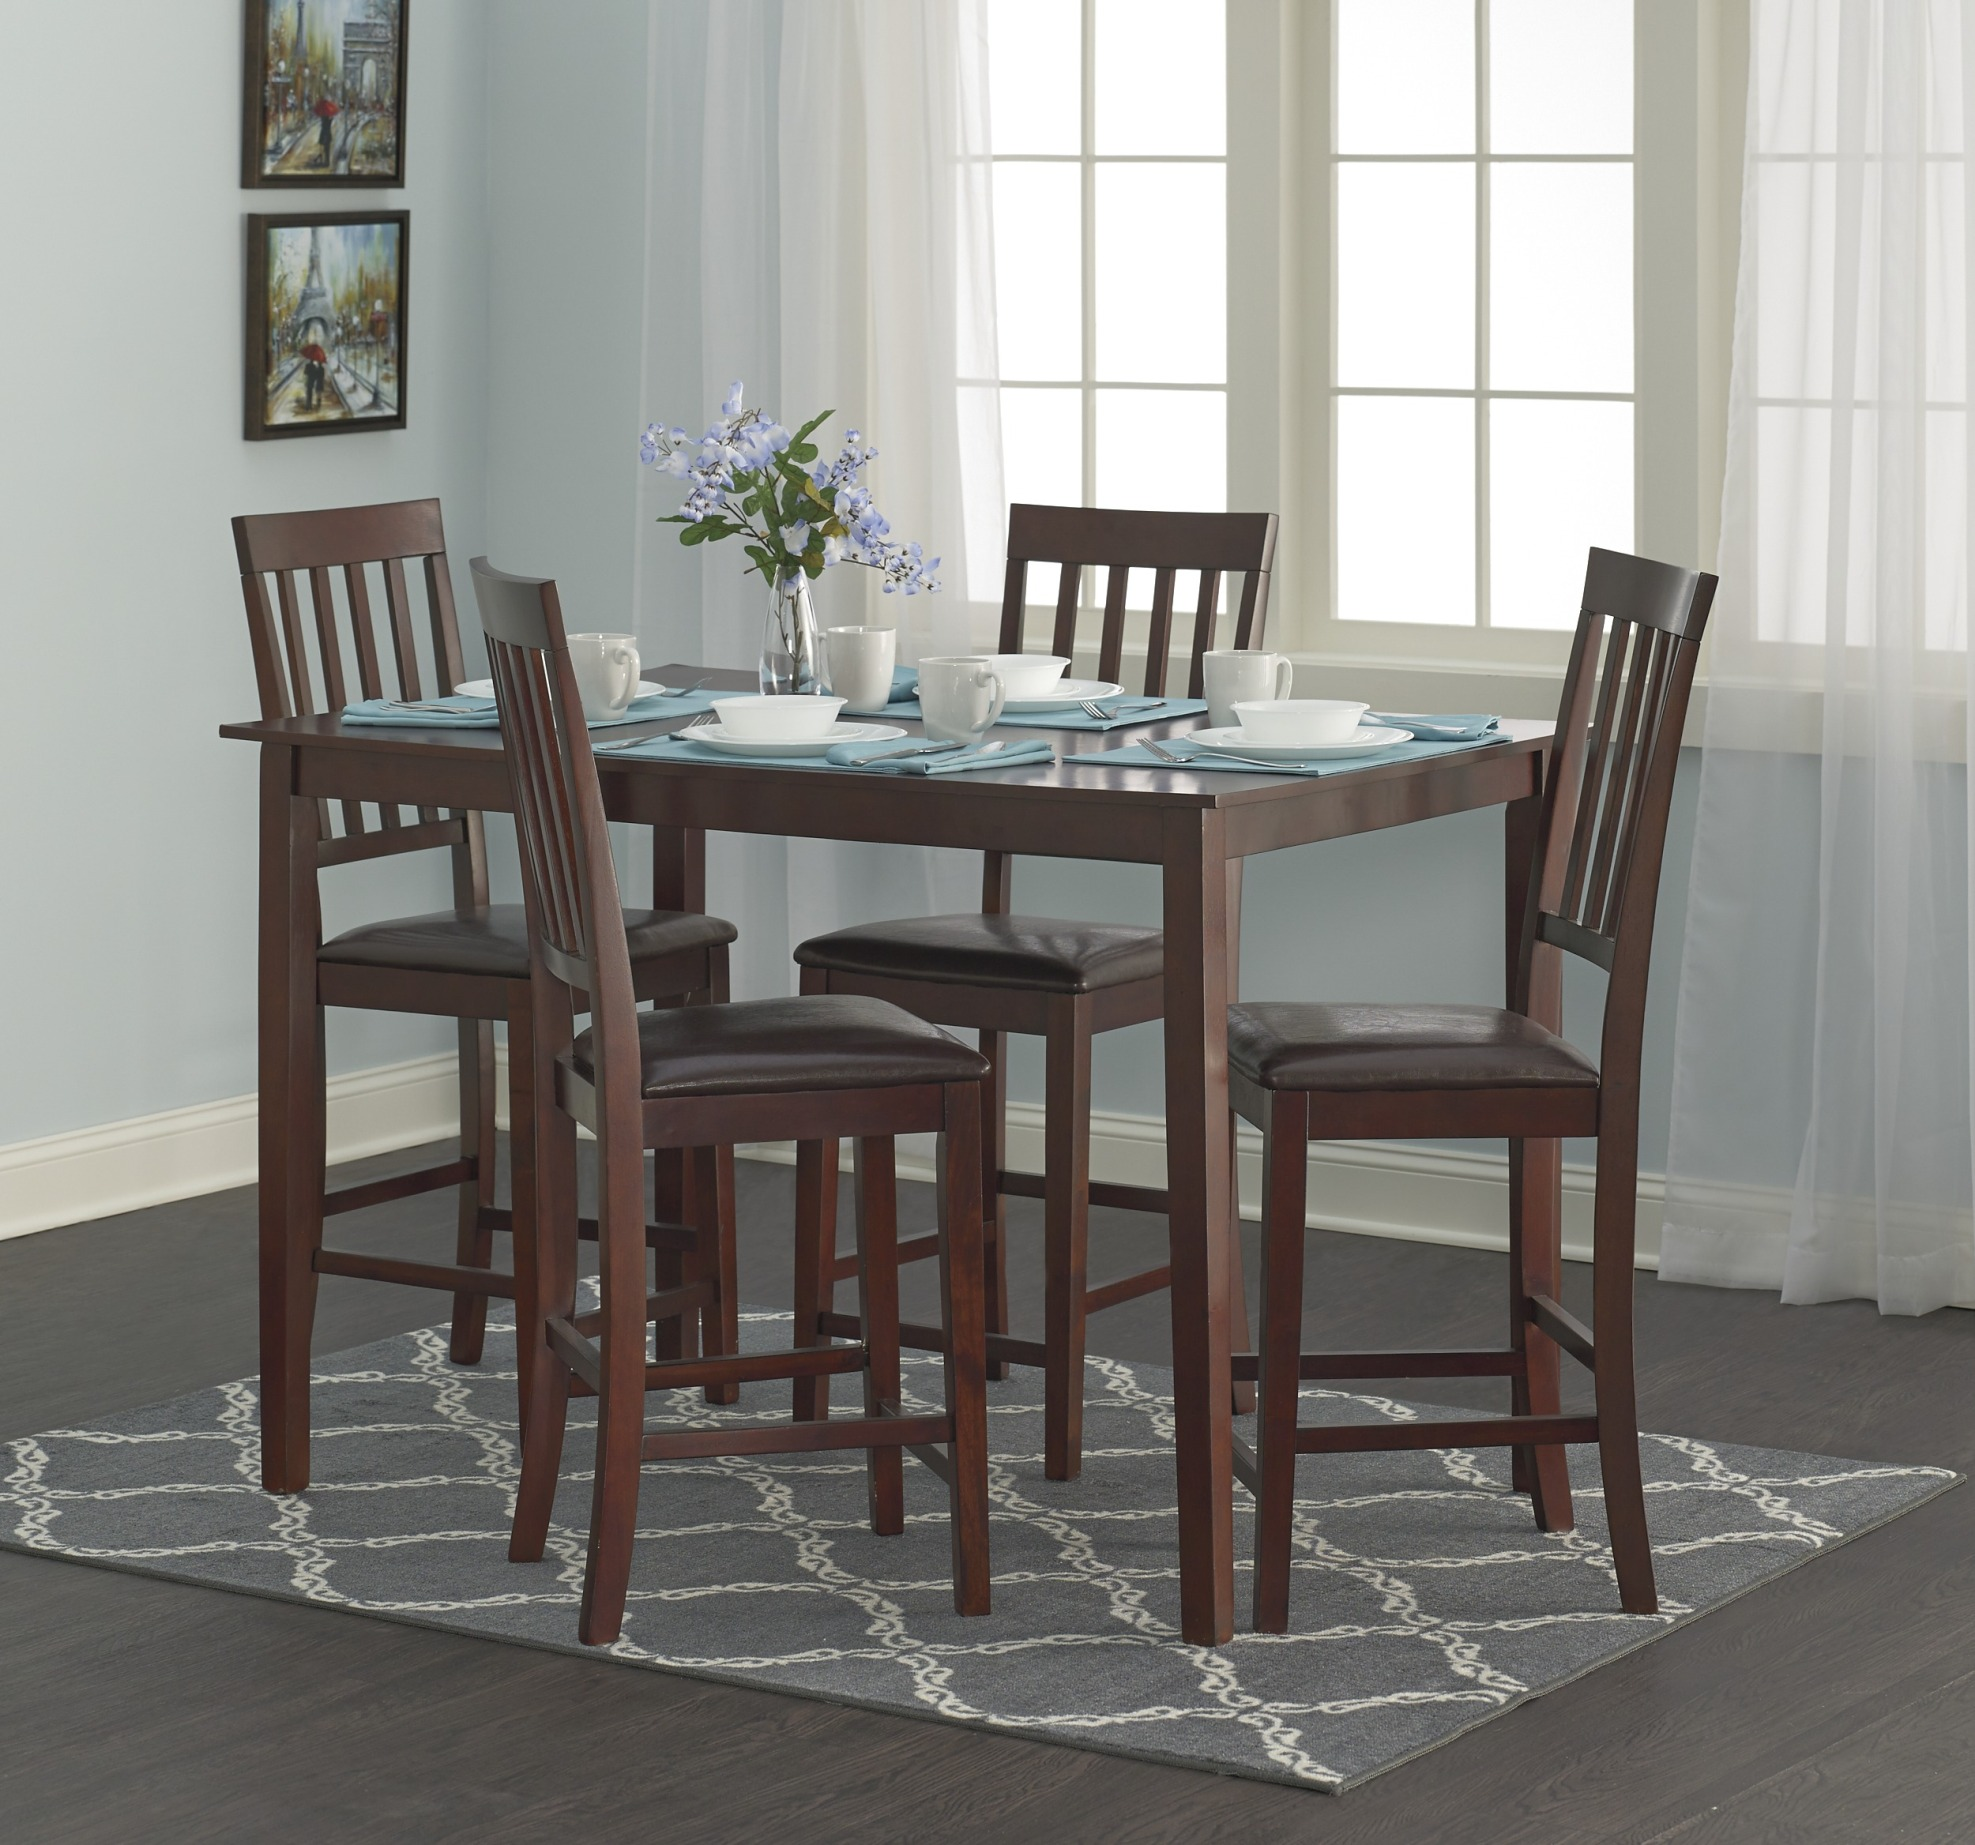 Essential Home Cayman 5pc High Top Dining Set - Furniture & Kitchen